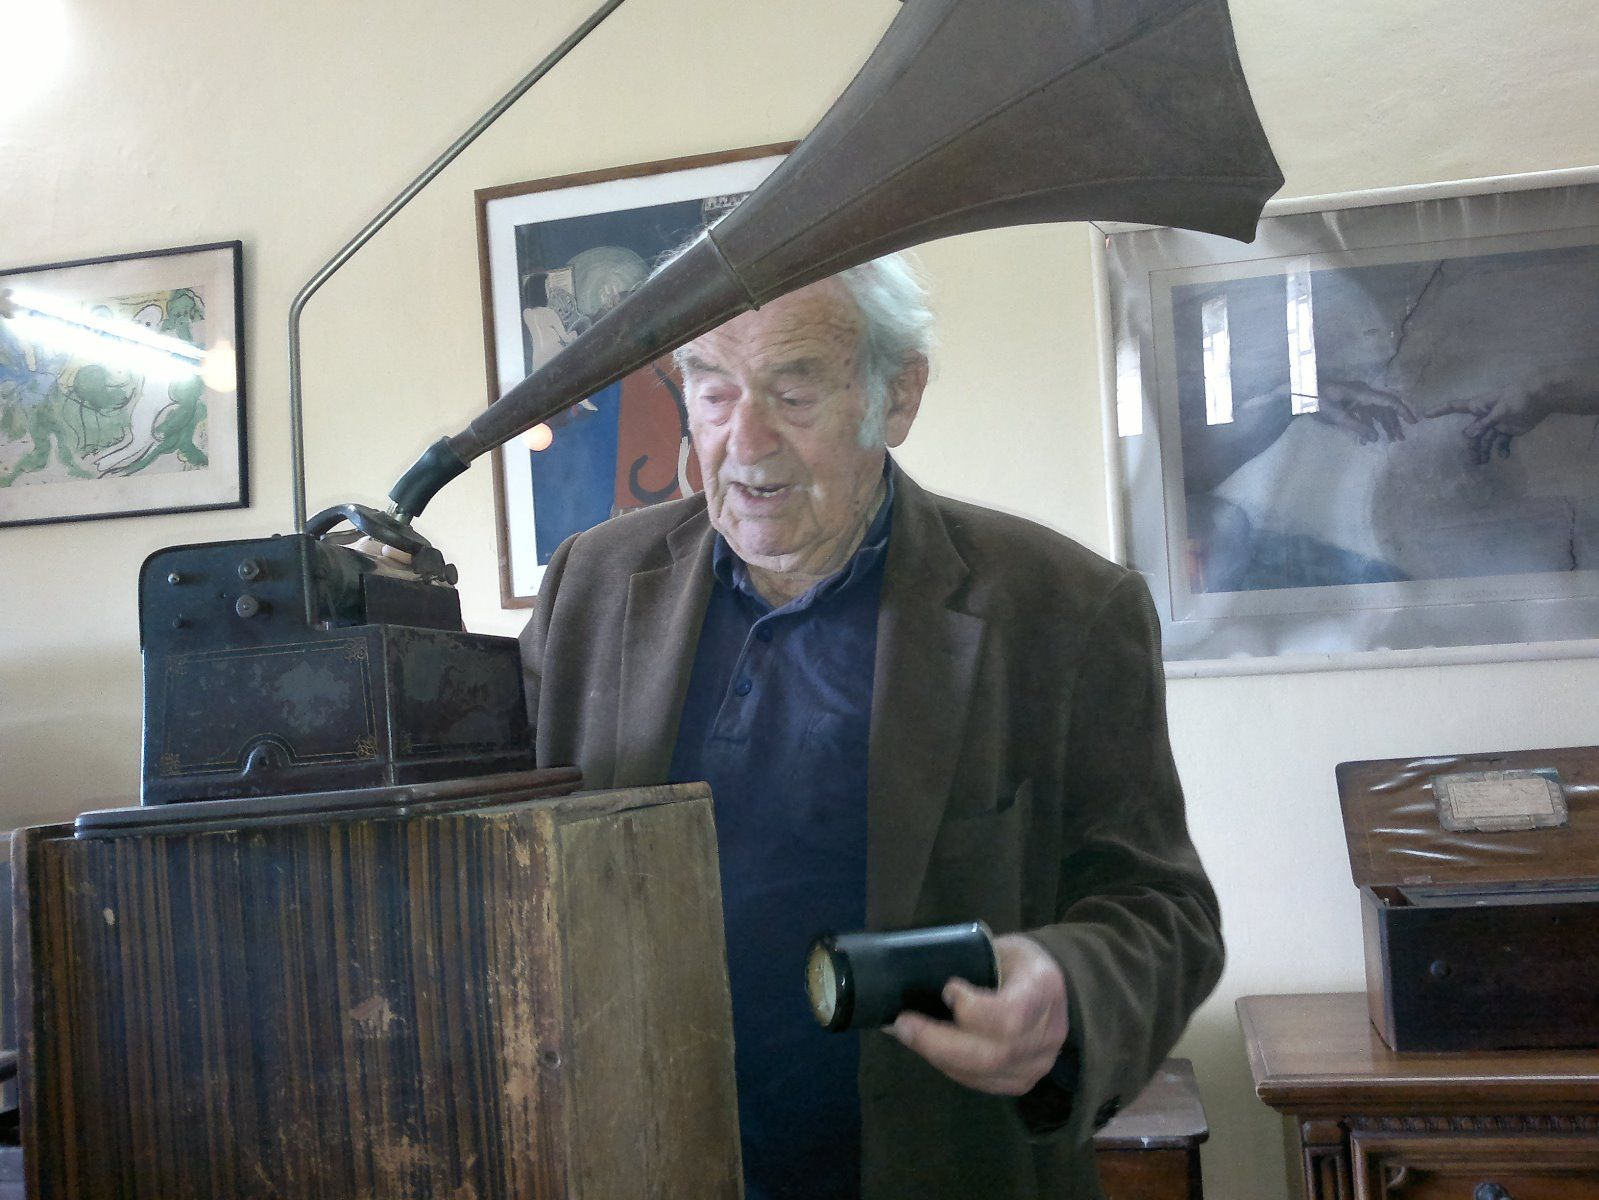 Nisan Cohen operating a gramophone in his museum. Photo by Abigail Klein Leichman